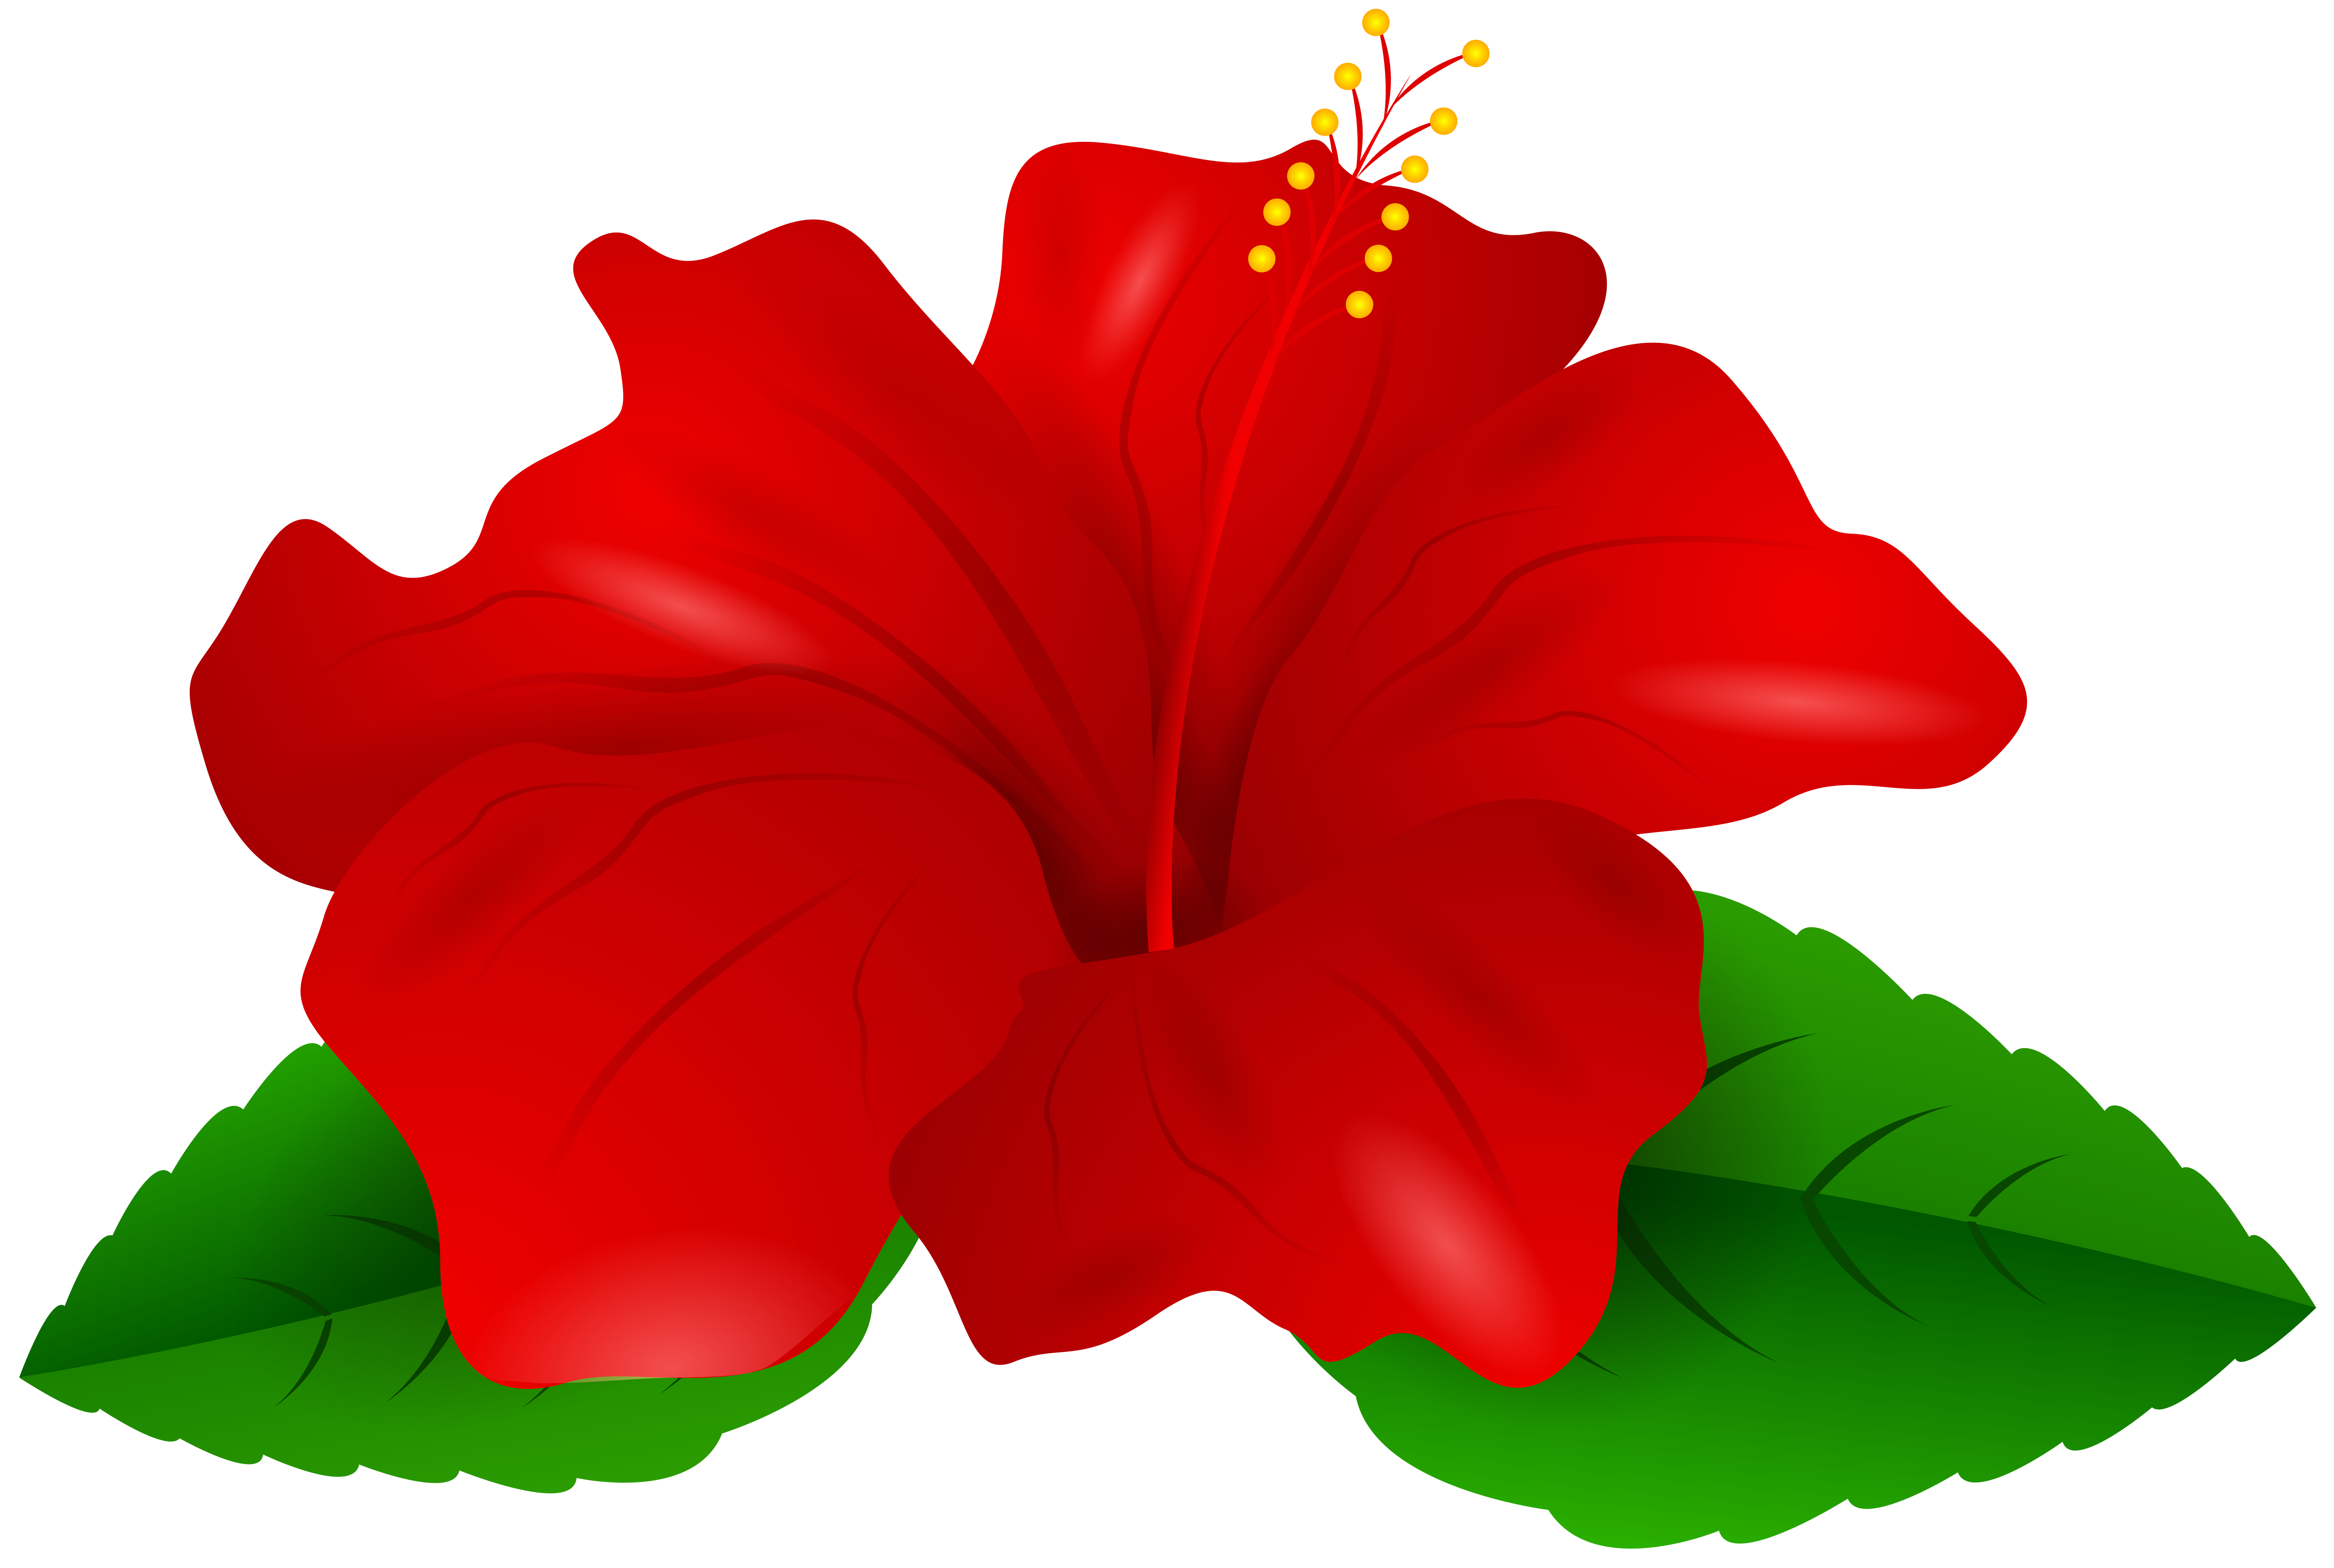 Picture Of Hibiscus Flower Free Download Best Picture Of Hibiscus